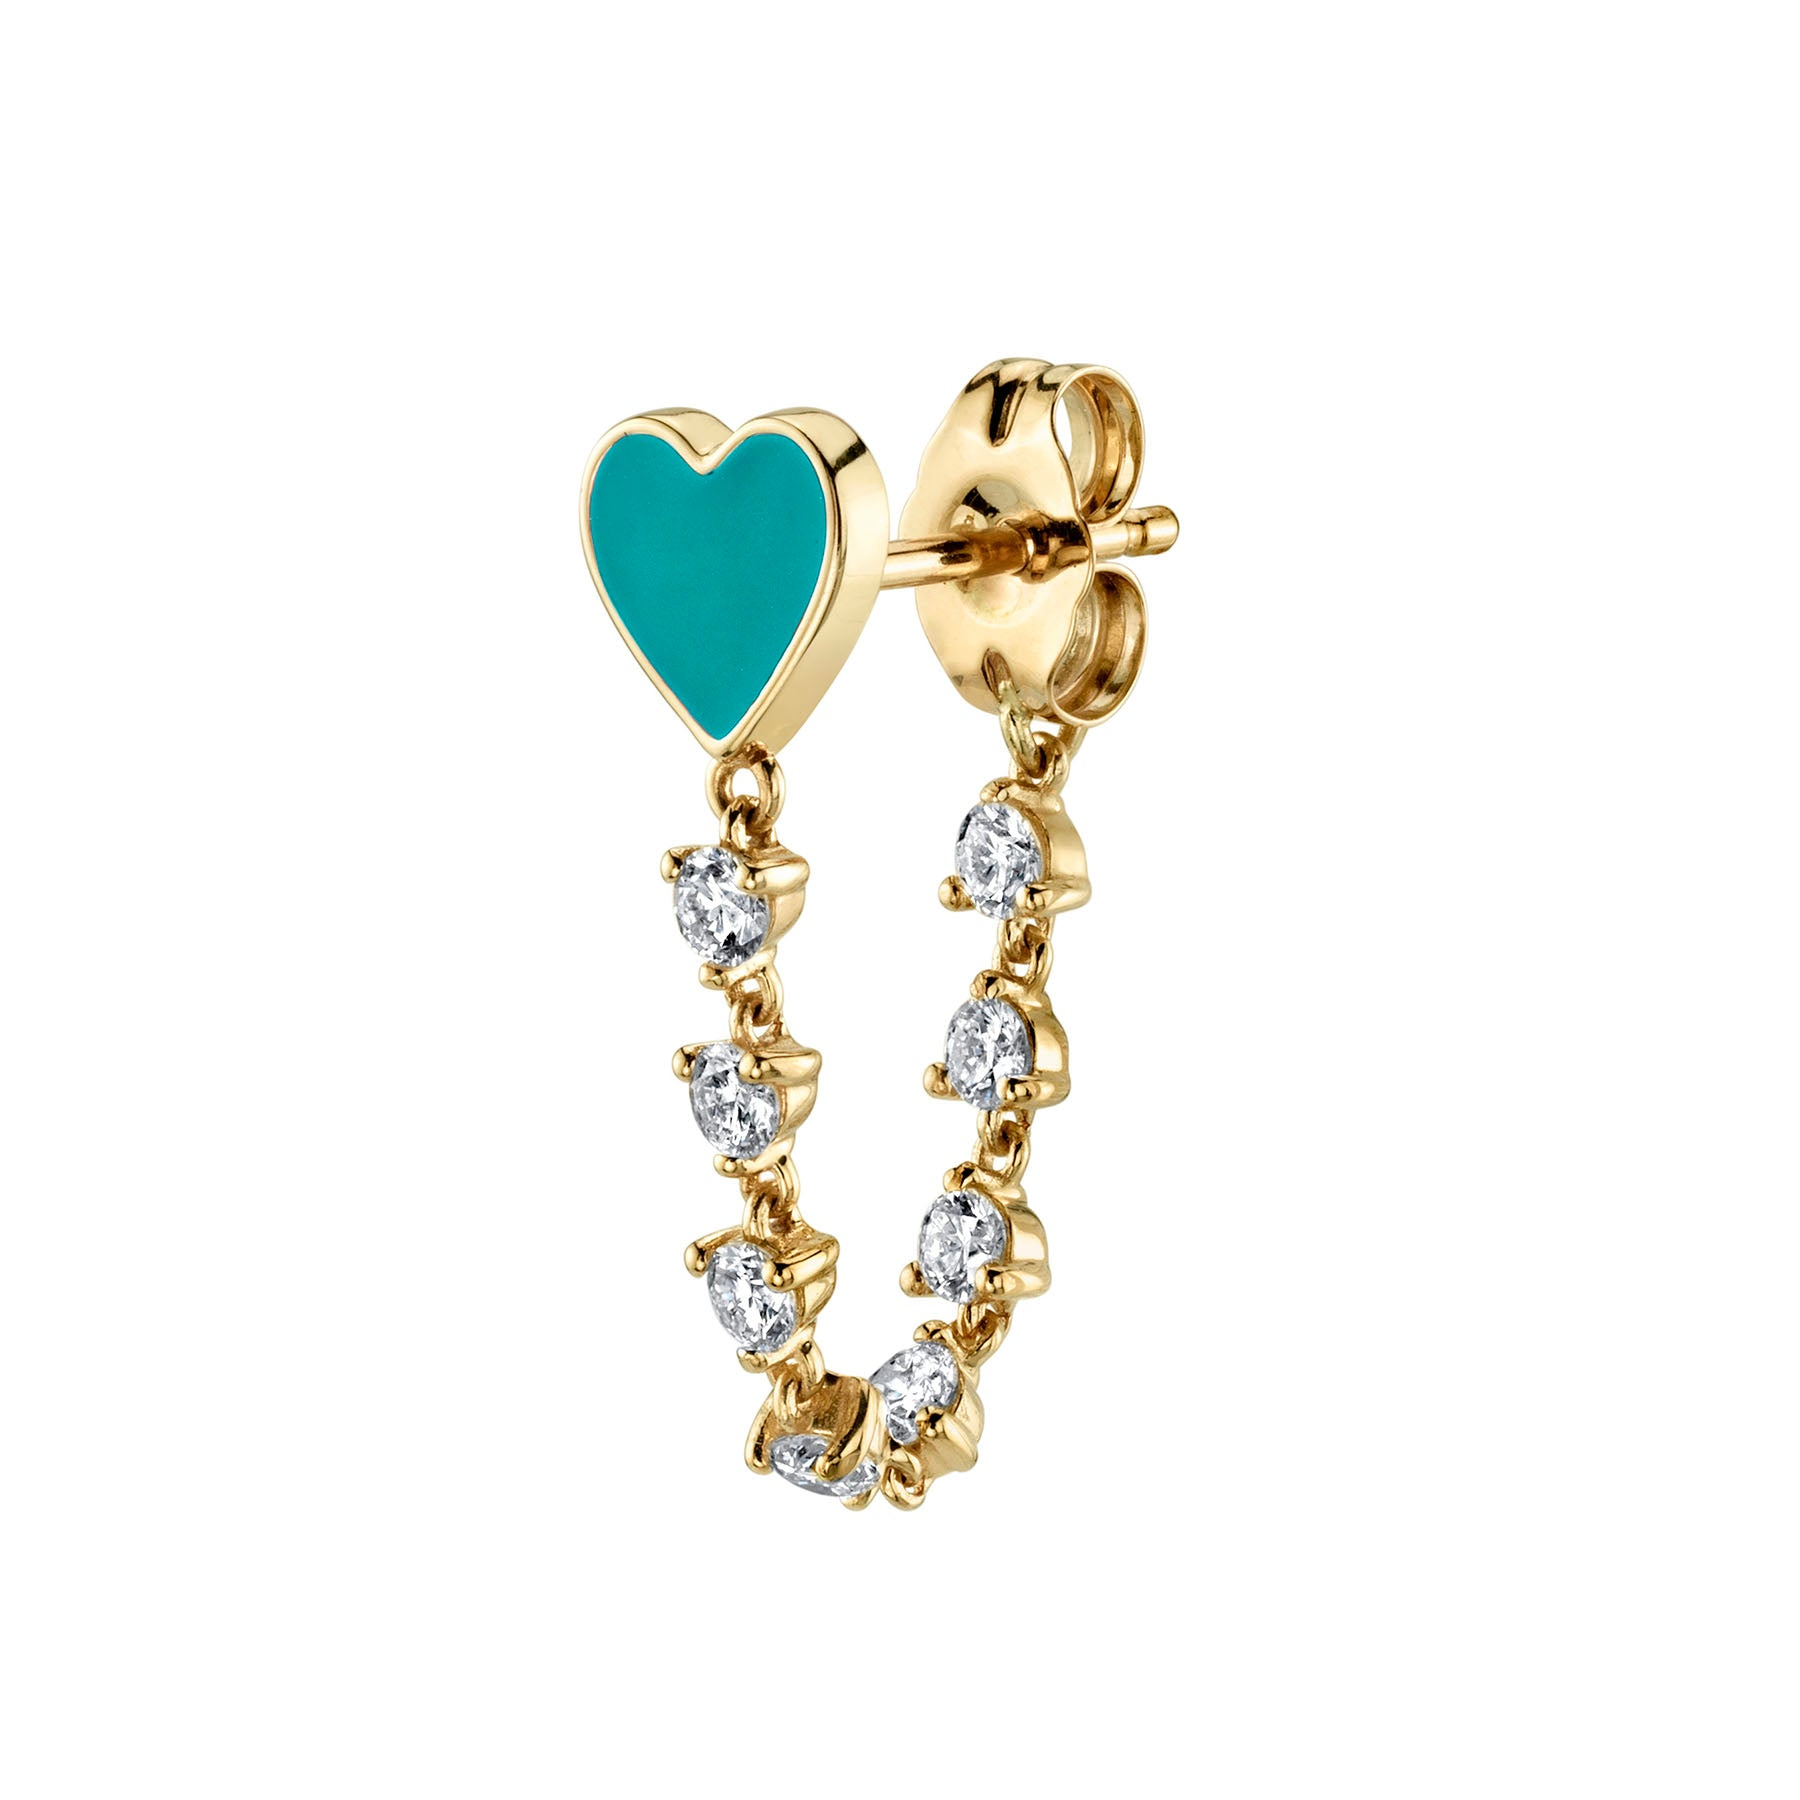 DIAMOND AND TURQUOISE ENAMEL HEART EARRING